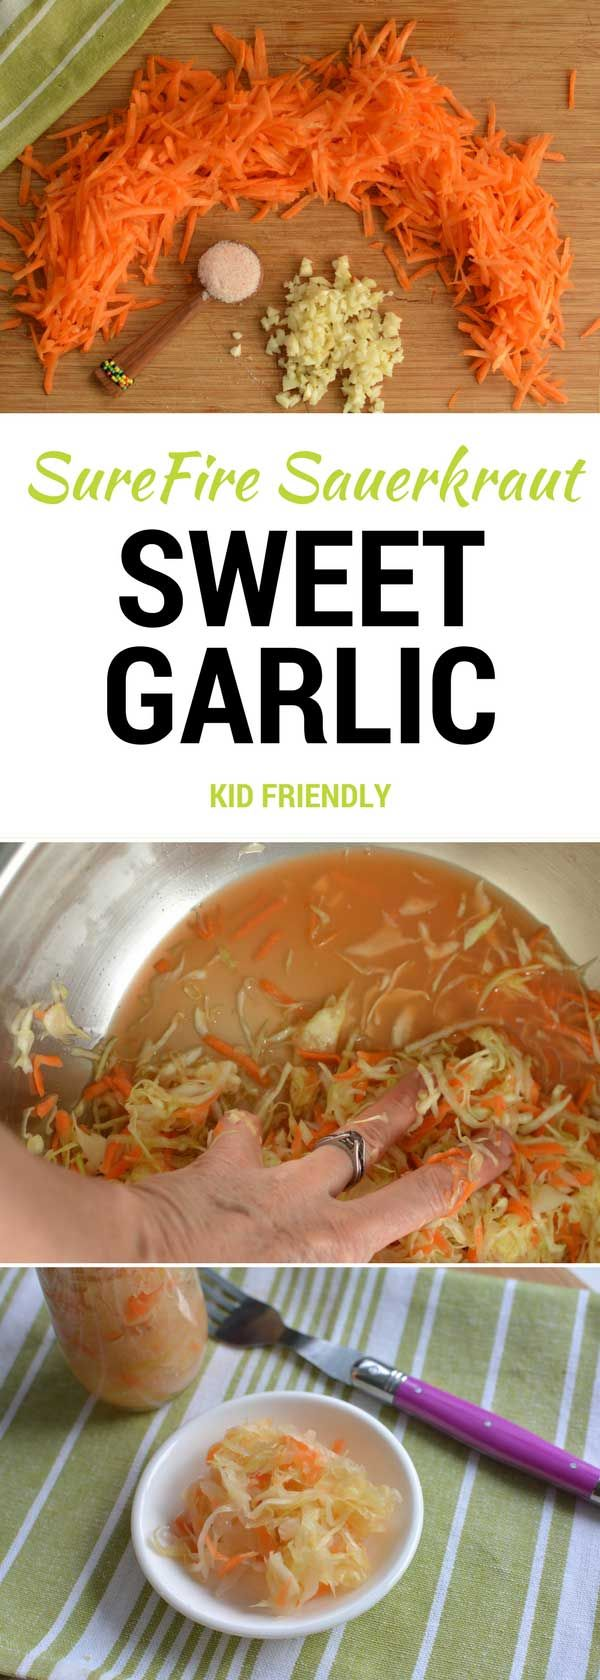 Sweet garlic sauerkraut recipe kid friendly recipe sauerkraut recipe sweetness of carrots contrasts with sharpness of garlic children love the flavor forumfinder Images